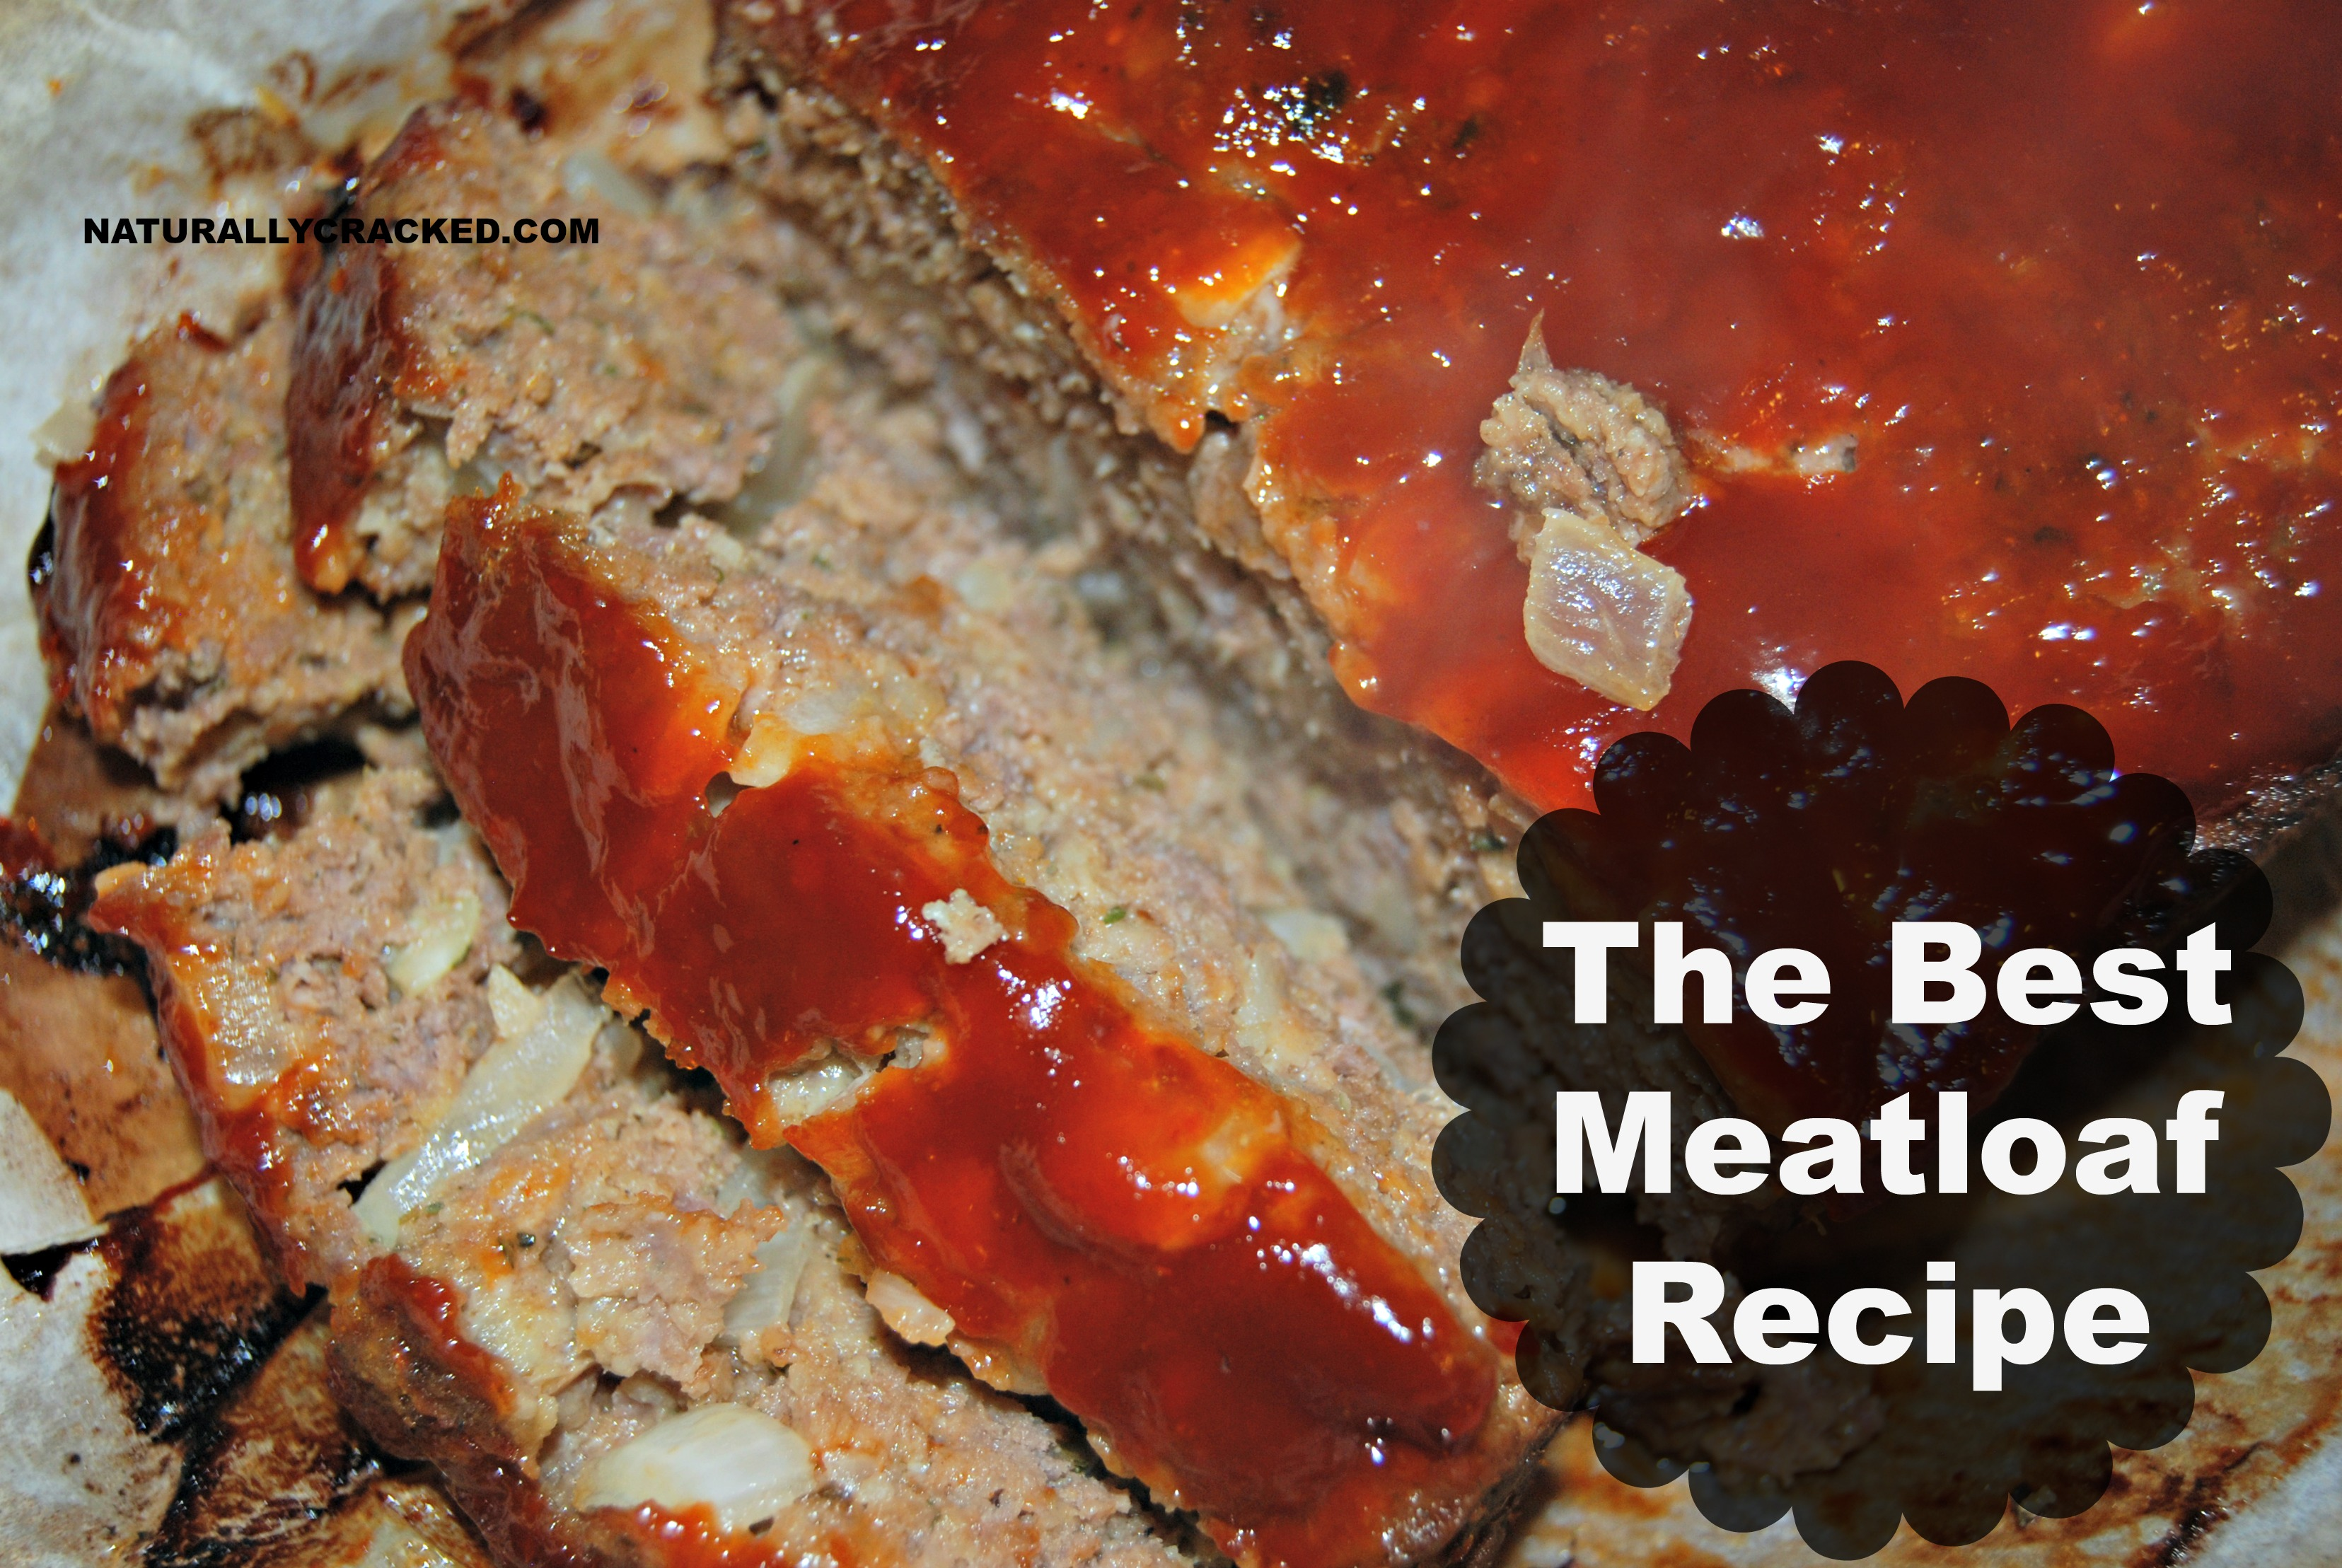 The Best Meatloaf Recipe Ever - Naturally Cracked